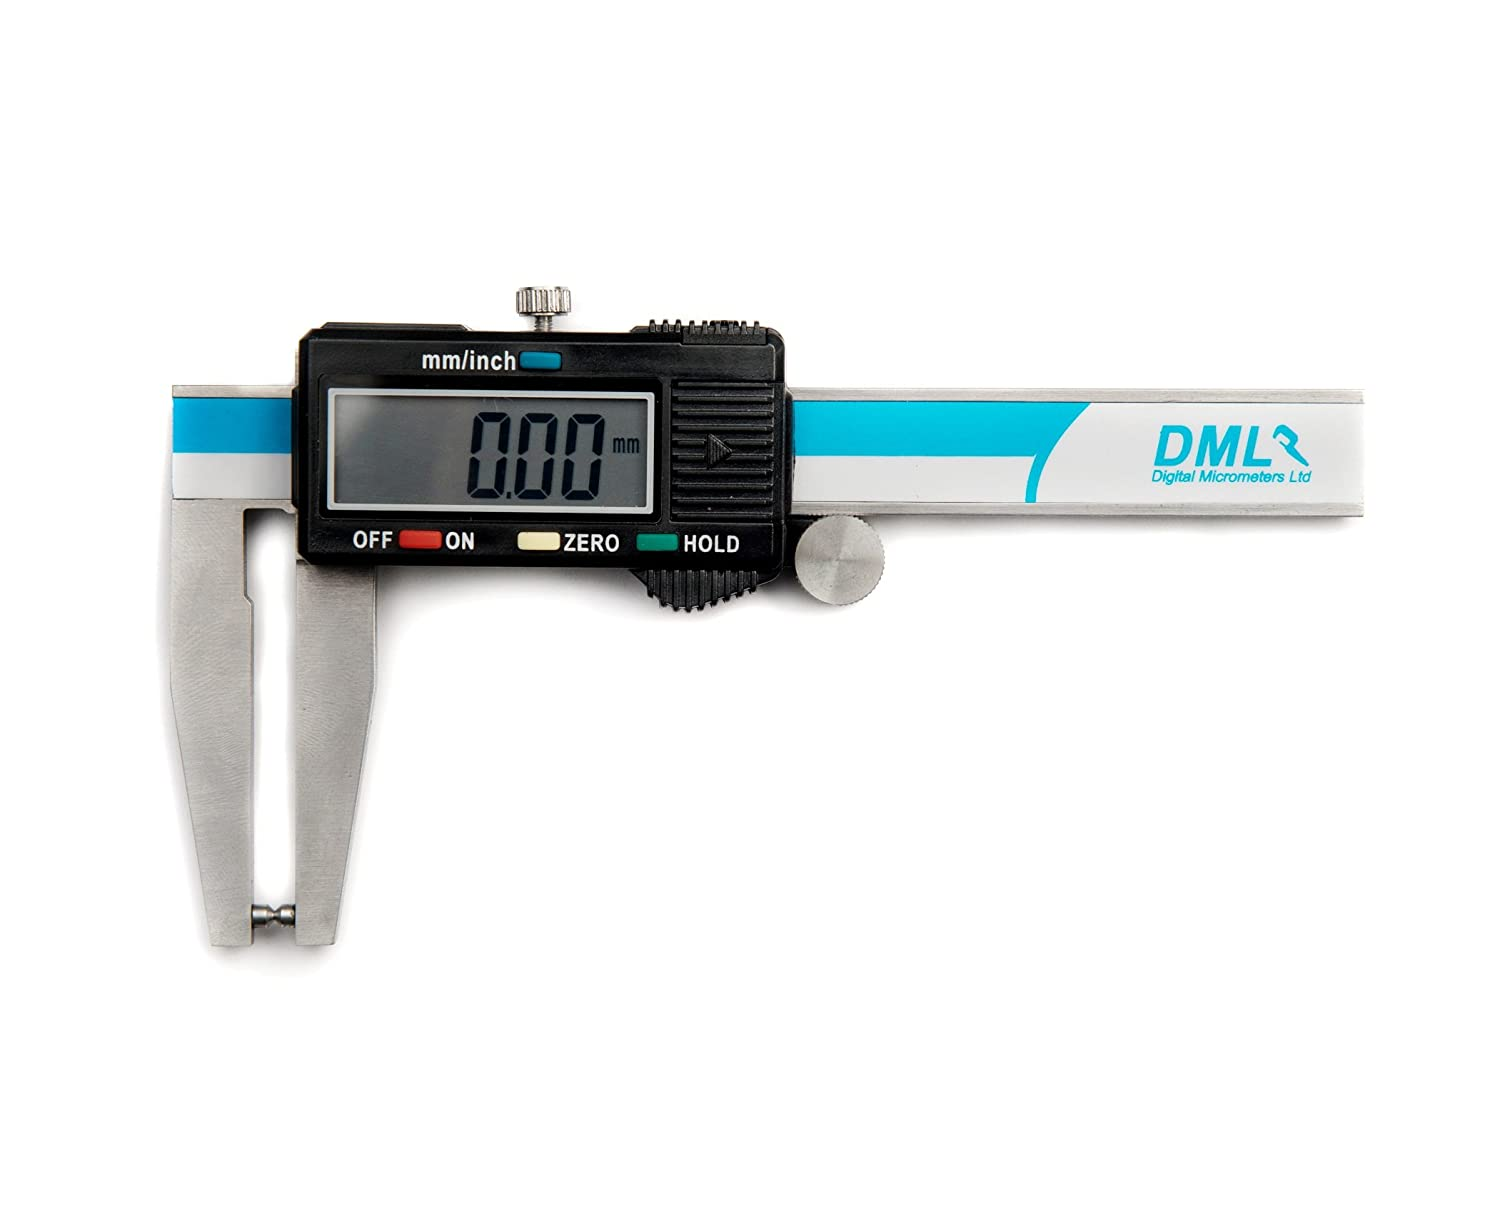 DML 60mm Digital Brake Disc Caliper 12 Months Warranty Digital Micrometers Ltd